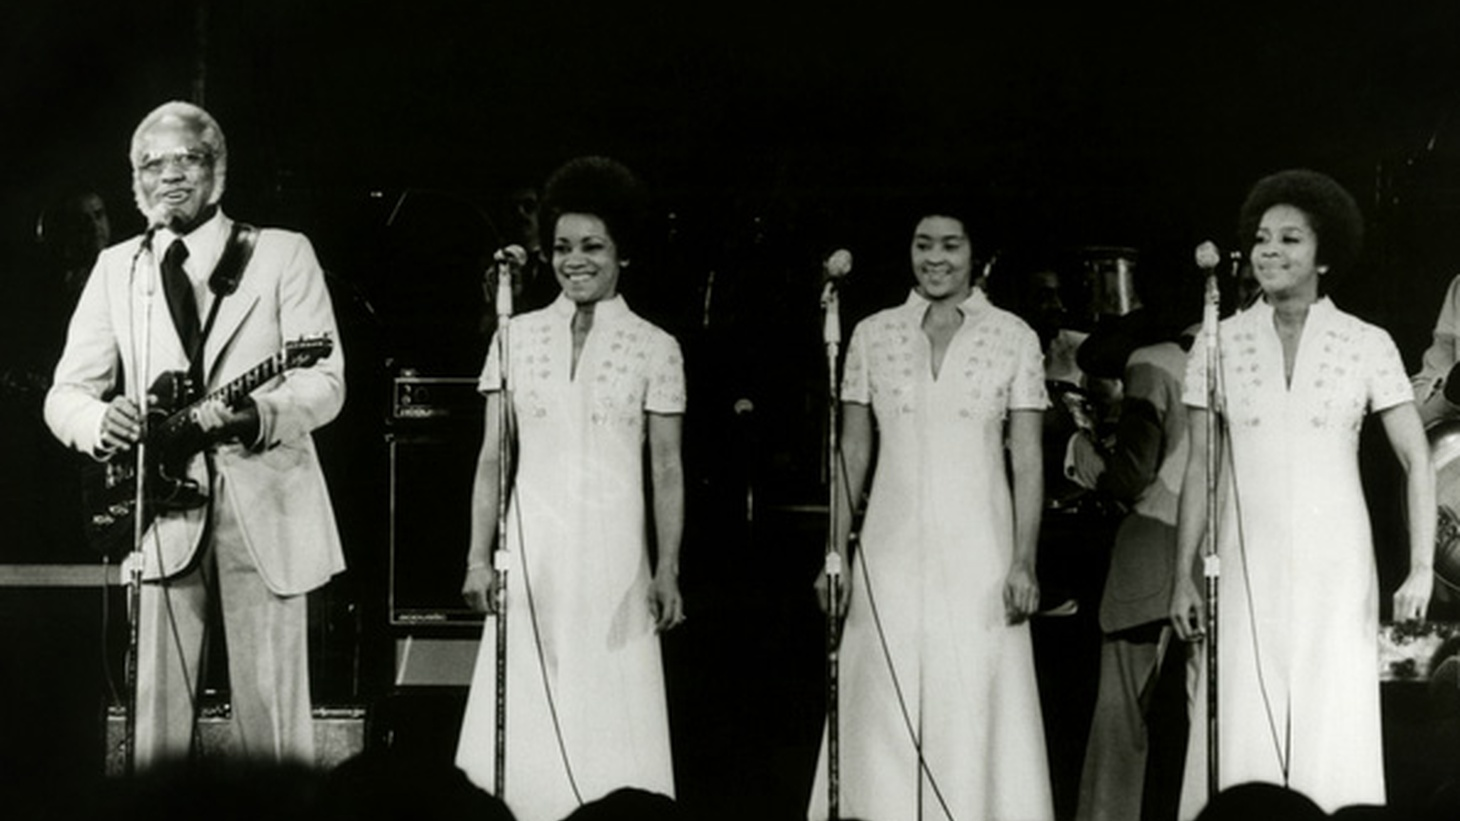 Originally recorded by the Gospel family band The Staple Singers back in 1972, I'll Take You There became a hit as Mavis Staples invited listeners to a call-and-response chorus and was later inducted into the Grammy Hall of Fame.